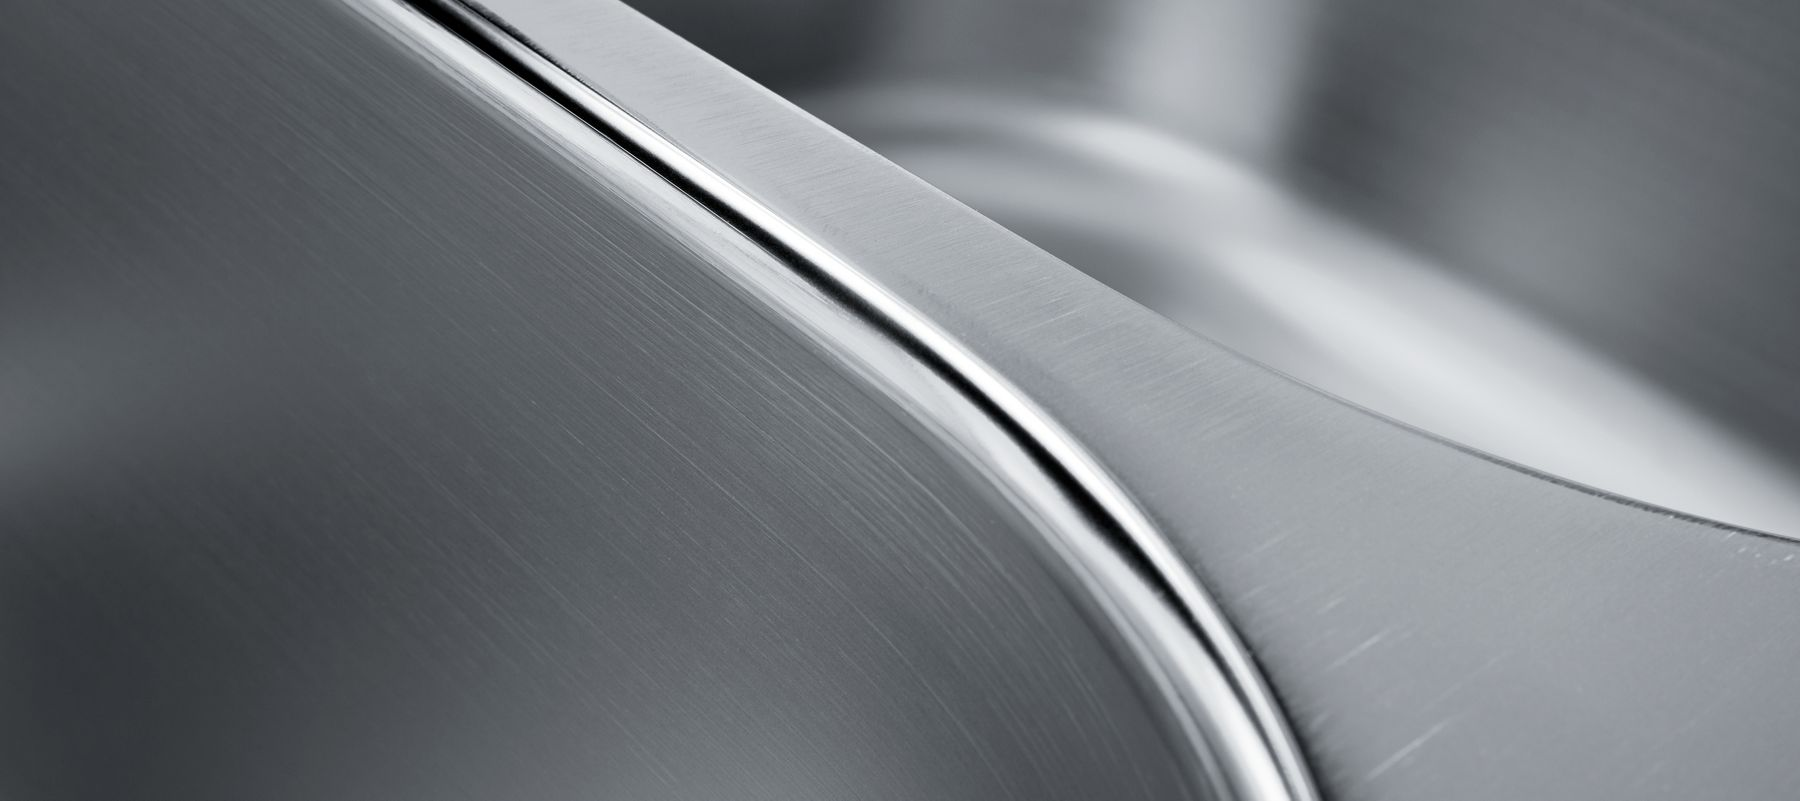 How To Clean A Stainless Steel Kitchen Sink